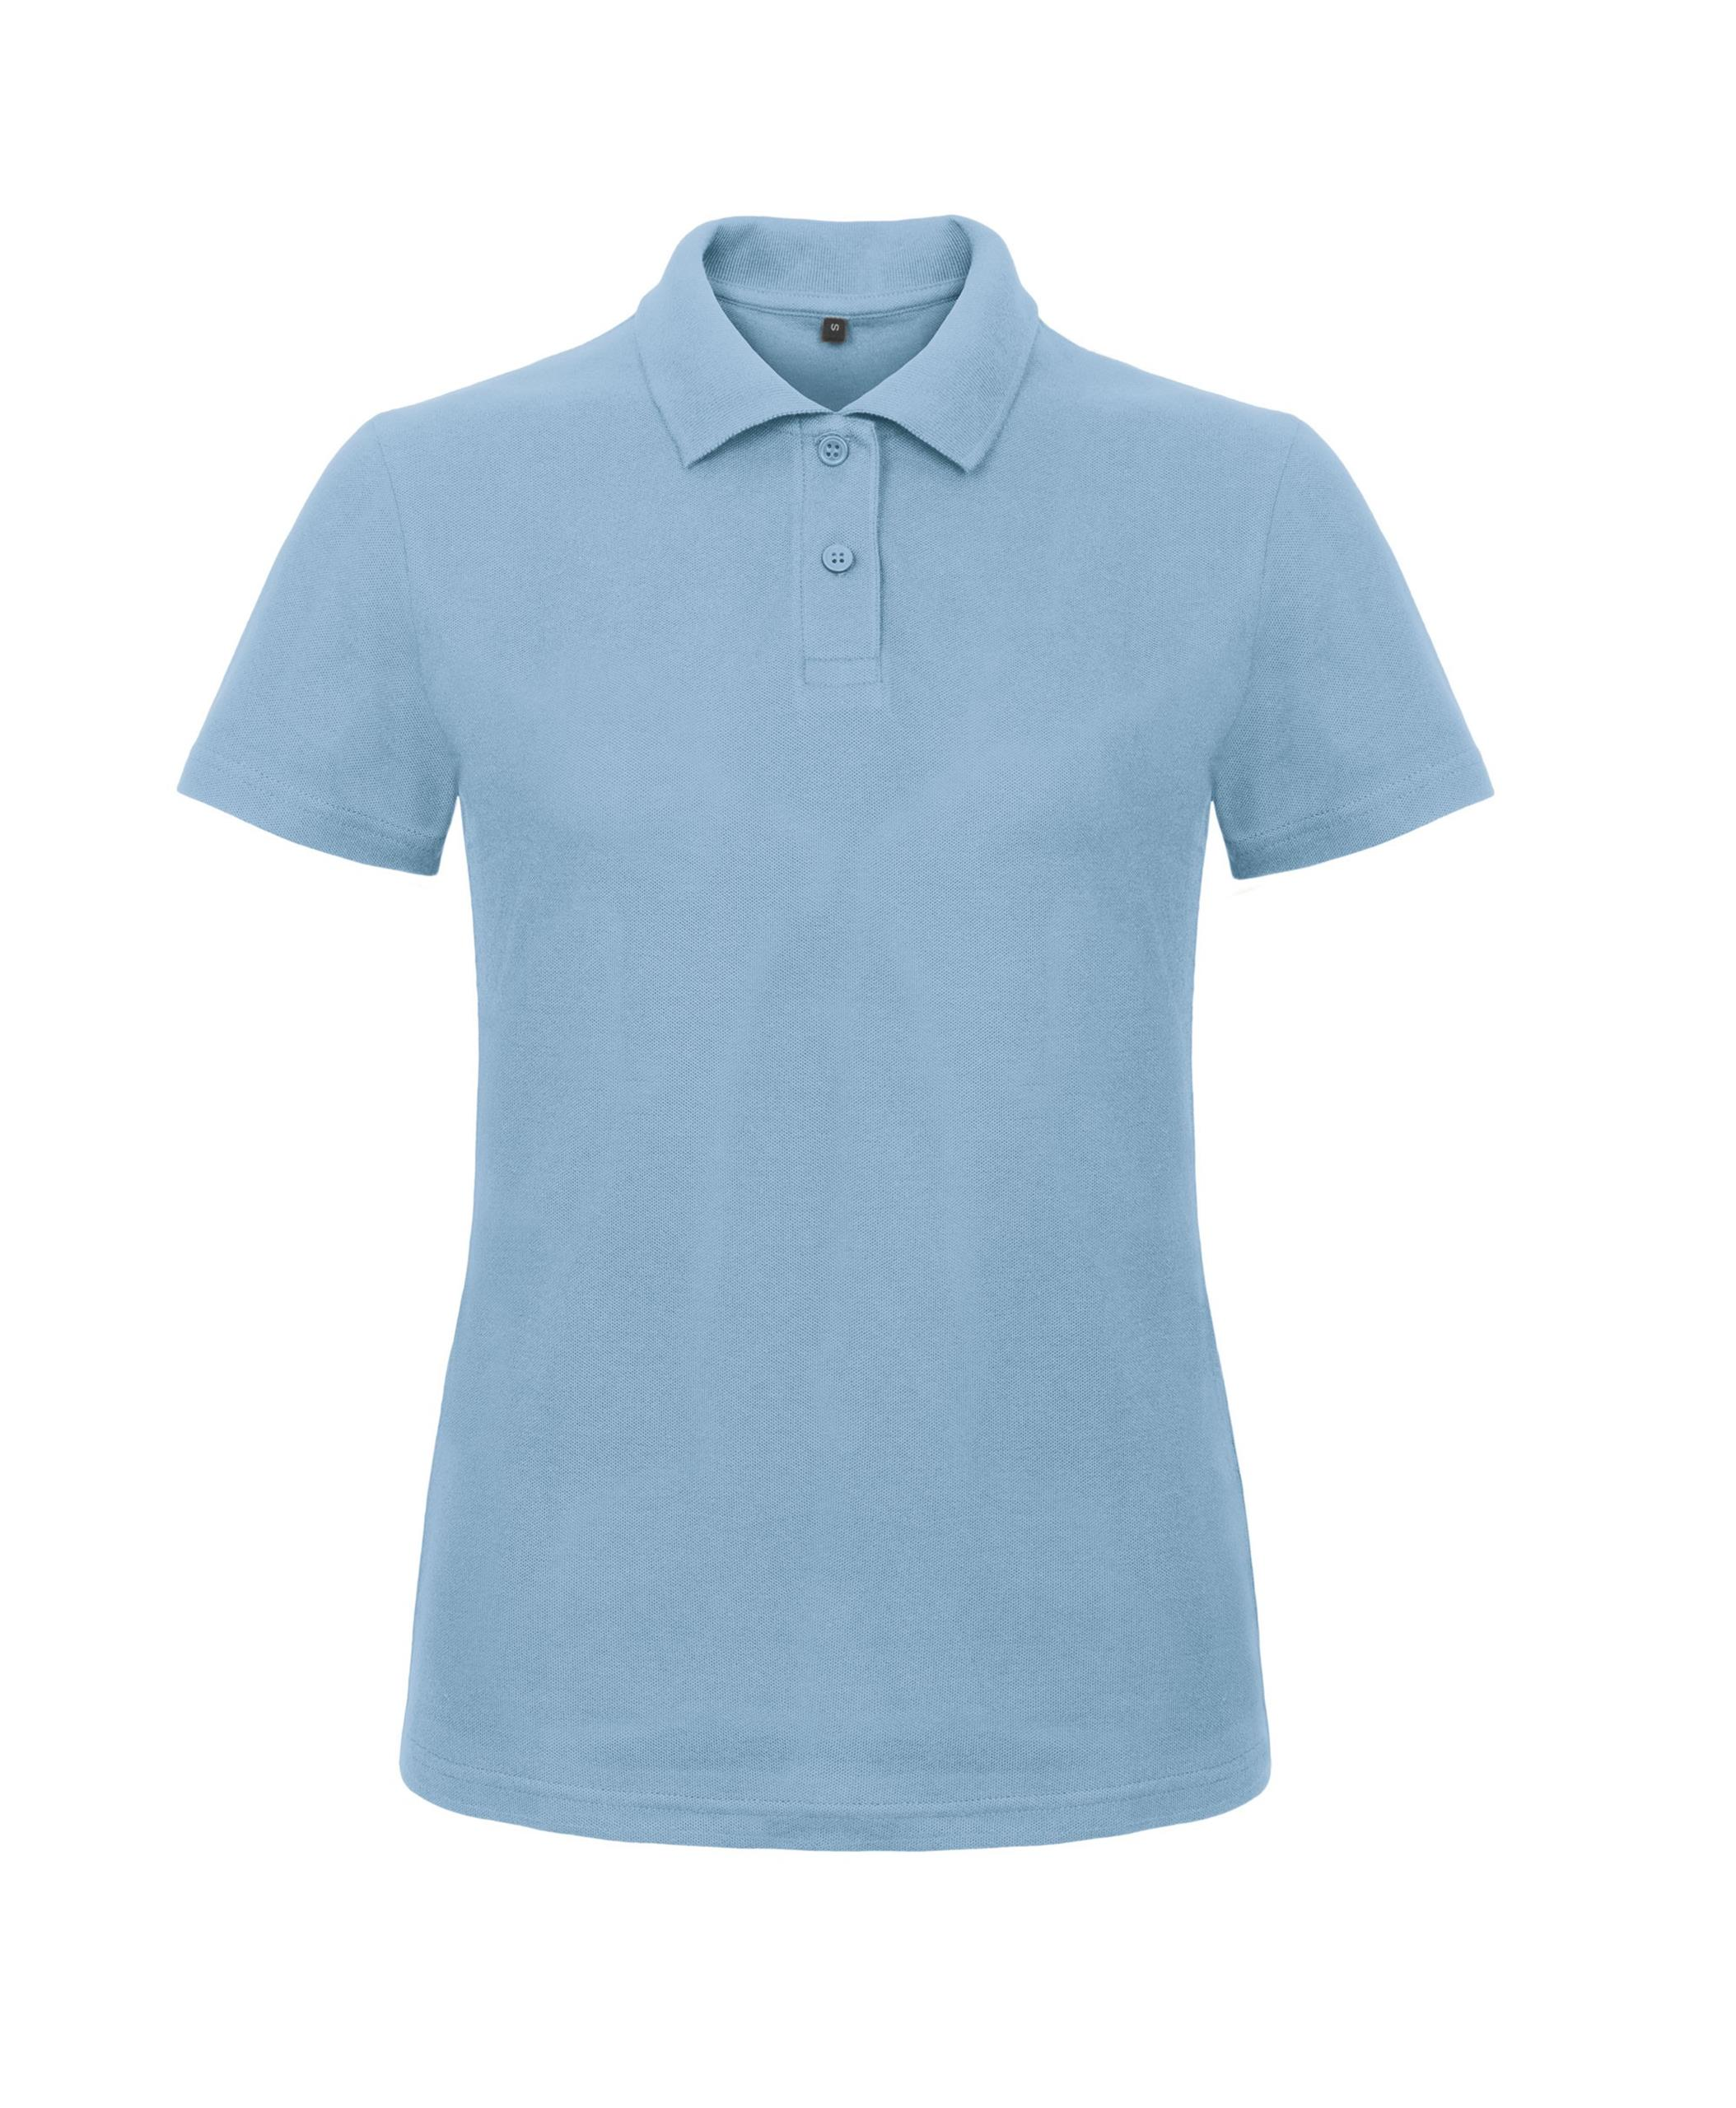 3c4385d3156 Teal Polo Tops   Chad Crowley Productions